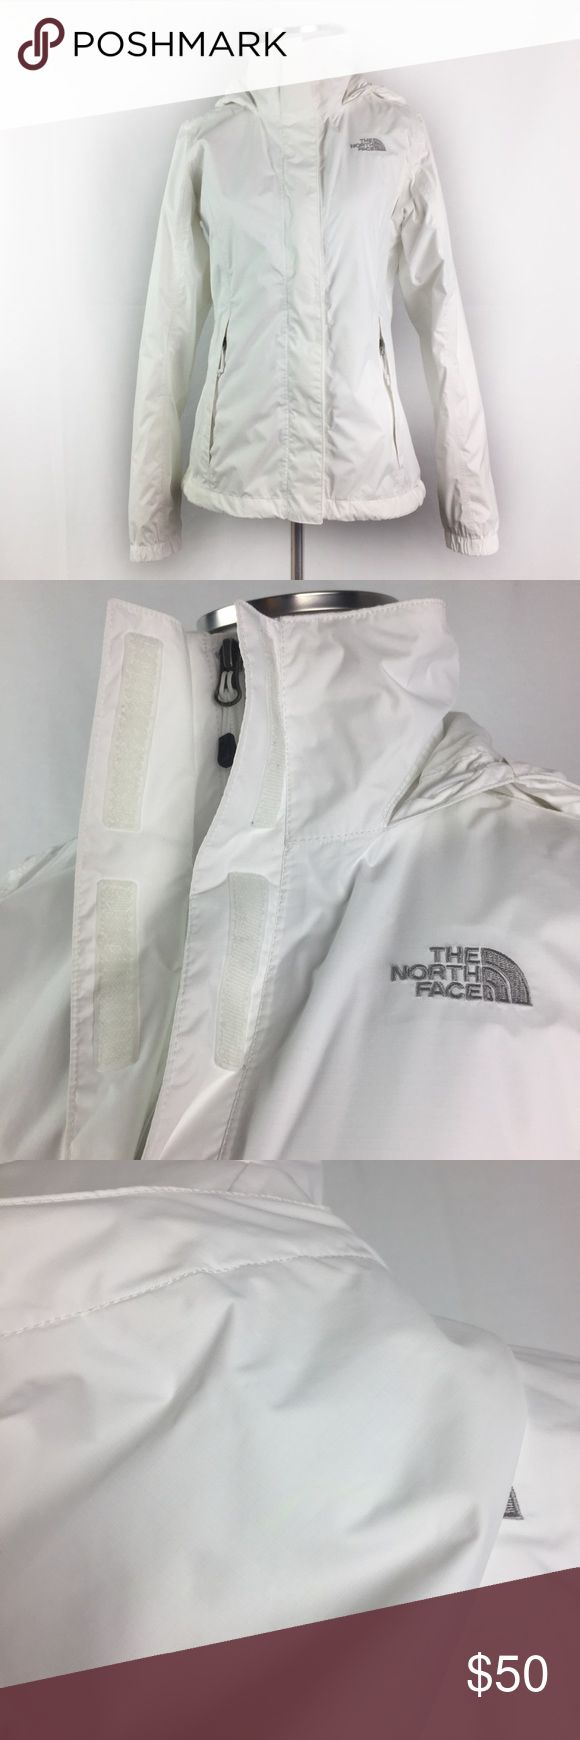 """The North Face White Hooded Rain Jacket Zip Up •The North Face White Hooded Rain Jacket •Women's Size XS •In good preowned condition with light yellow spot on hood and a few tiny unnoticeable spots throughout •Nylon/ Polyester •All measurements are approximate: 25"""" length, 19"""" across chest, 21.5"""" sleeve length The North Face Jackets & Coats"""